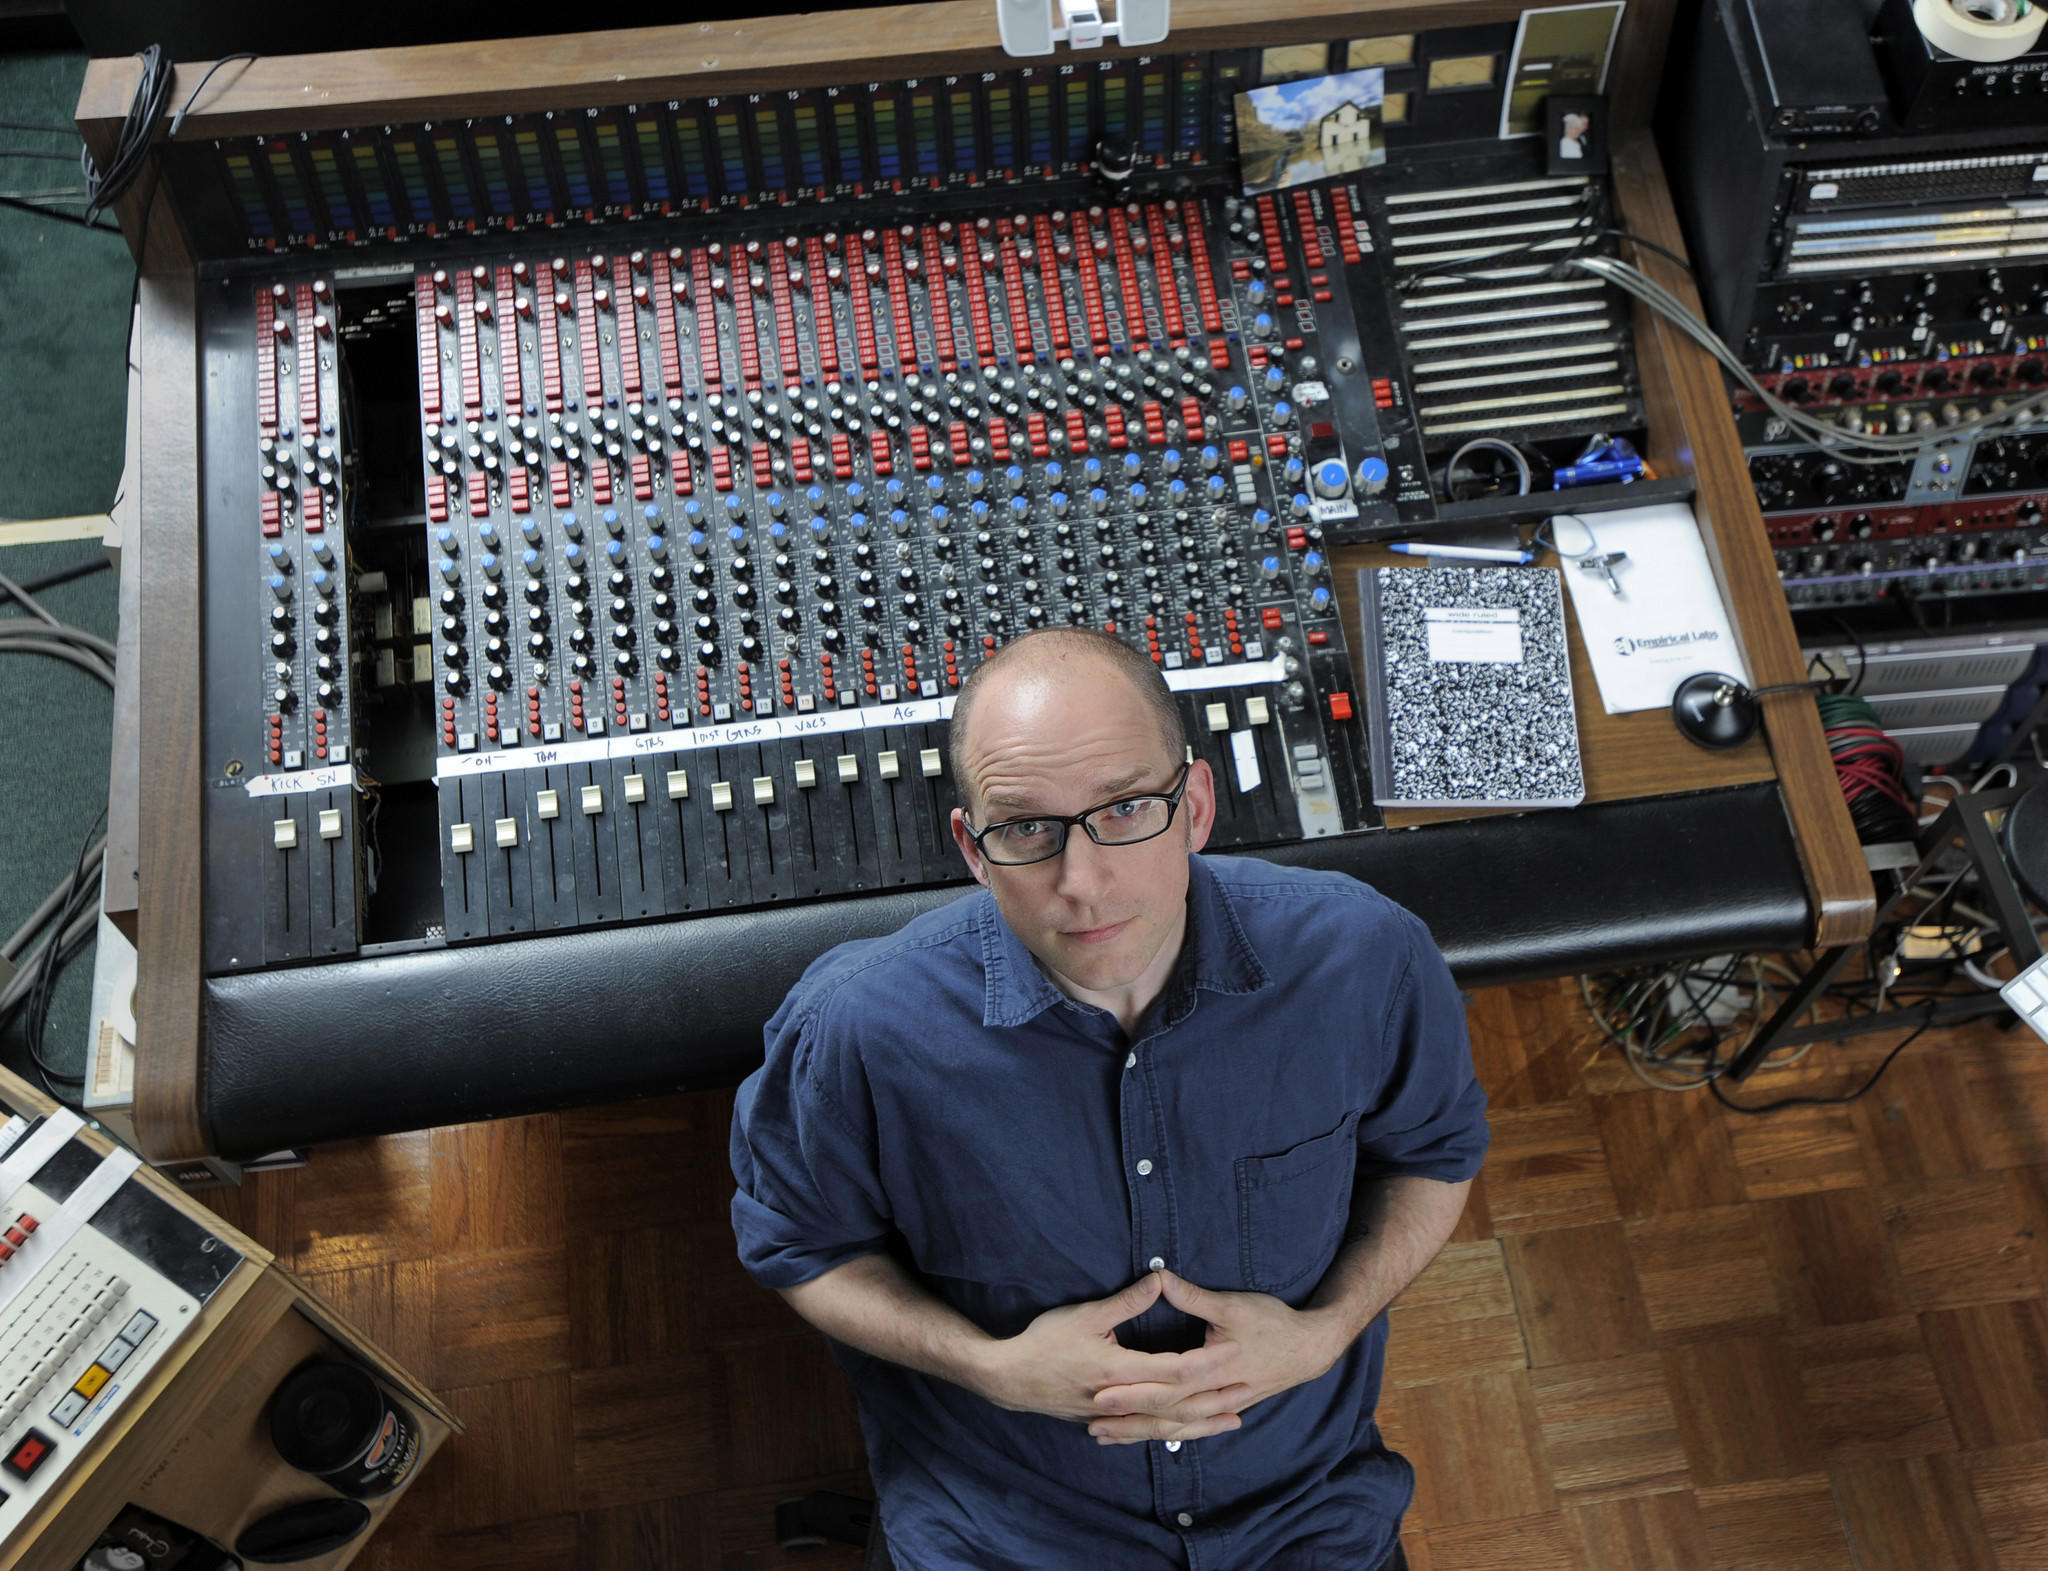 Baltimore music producer J. Robbins sits behind the boards at the Magpie Cage recording studio in Johnston Square.